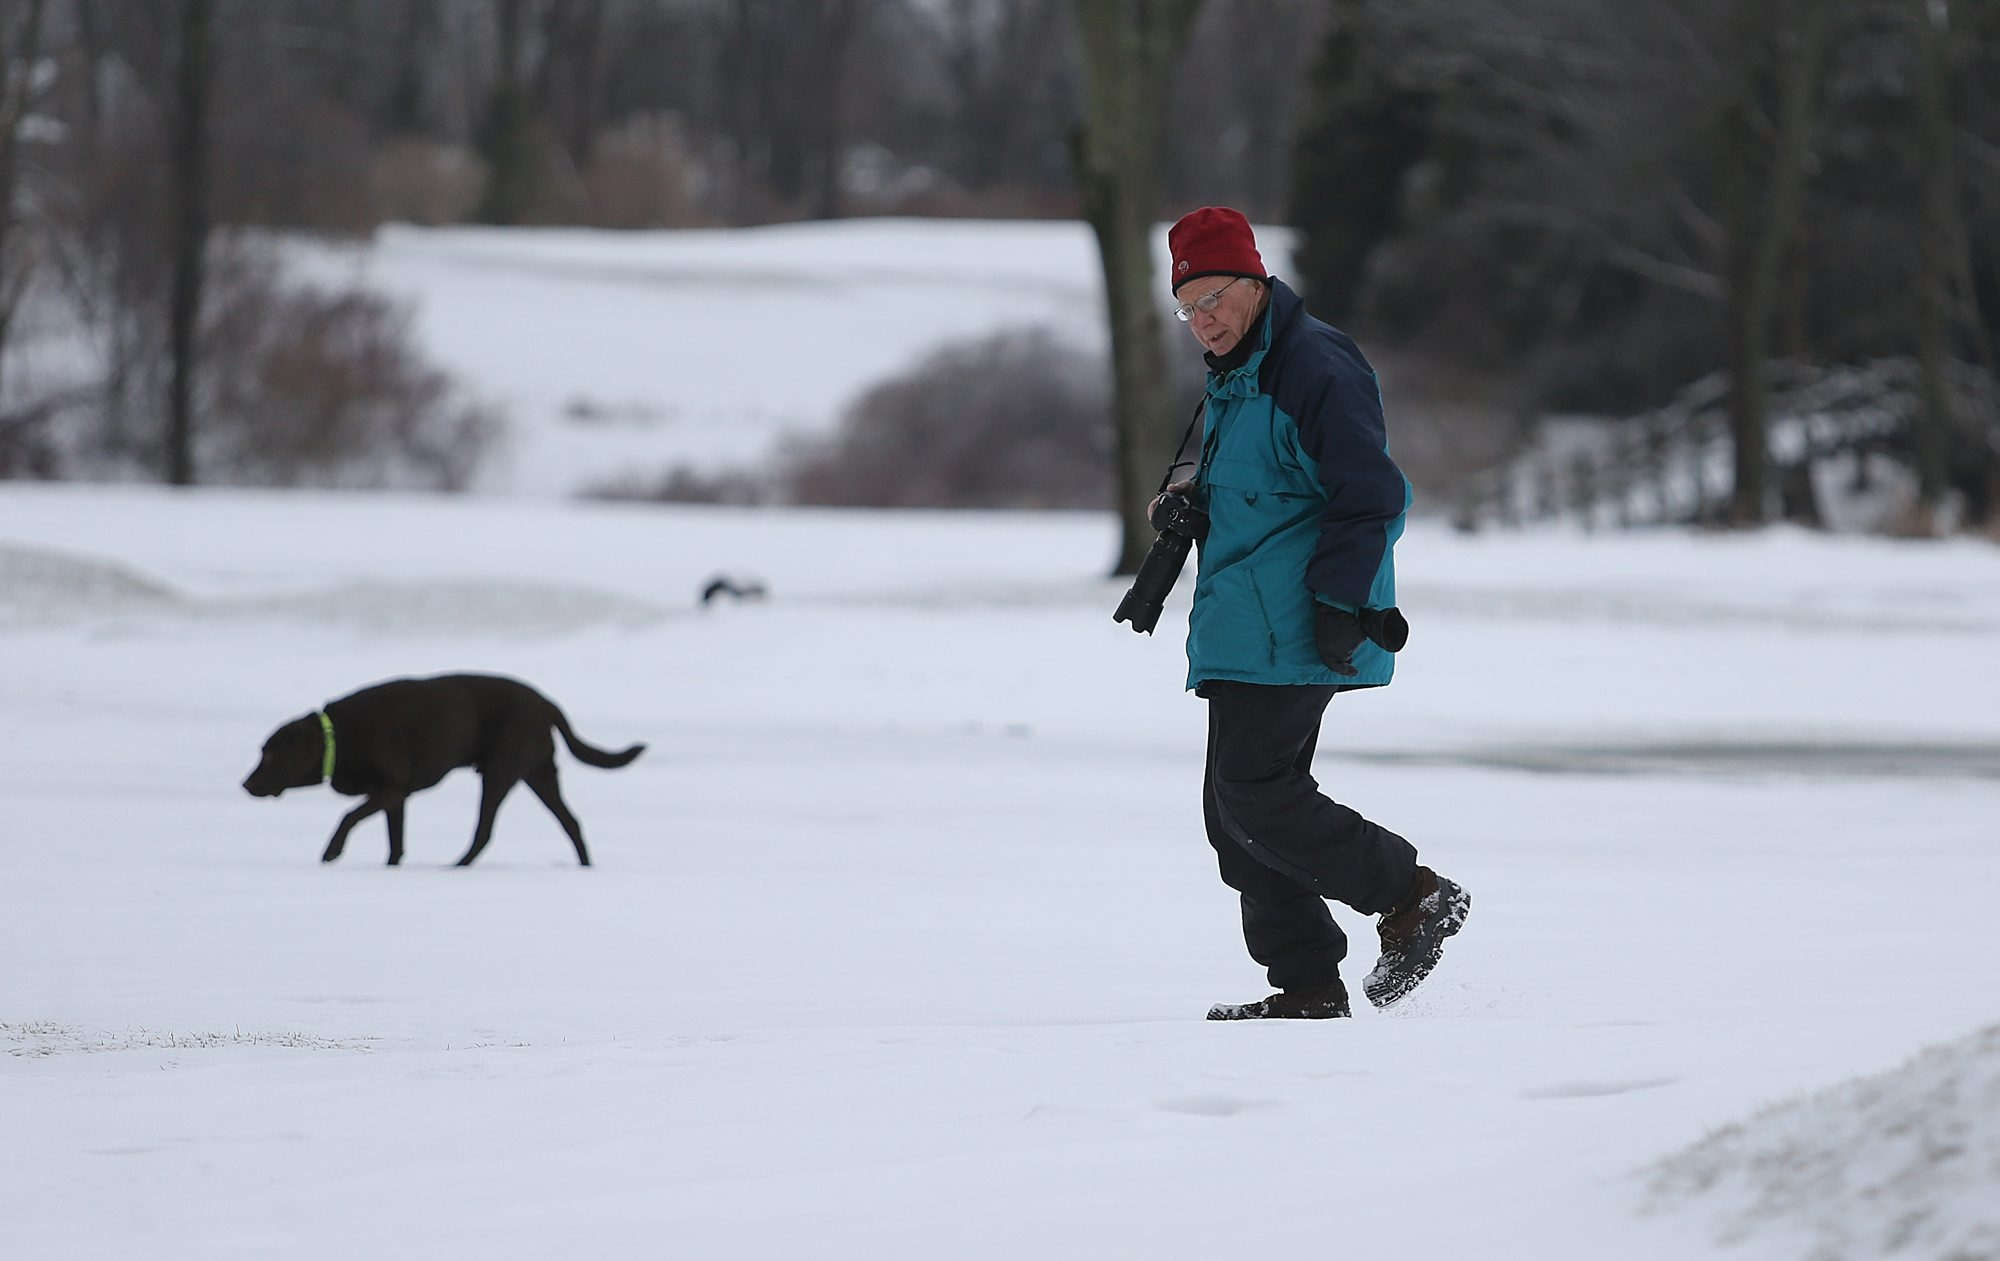 Jeff Belling, of Williamsville, and his dog Garcia go for a walk Sunday on property adjacent to Amherst State Park. Those walking dogs within park boundaries are supposed to have their dogs on a leash.